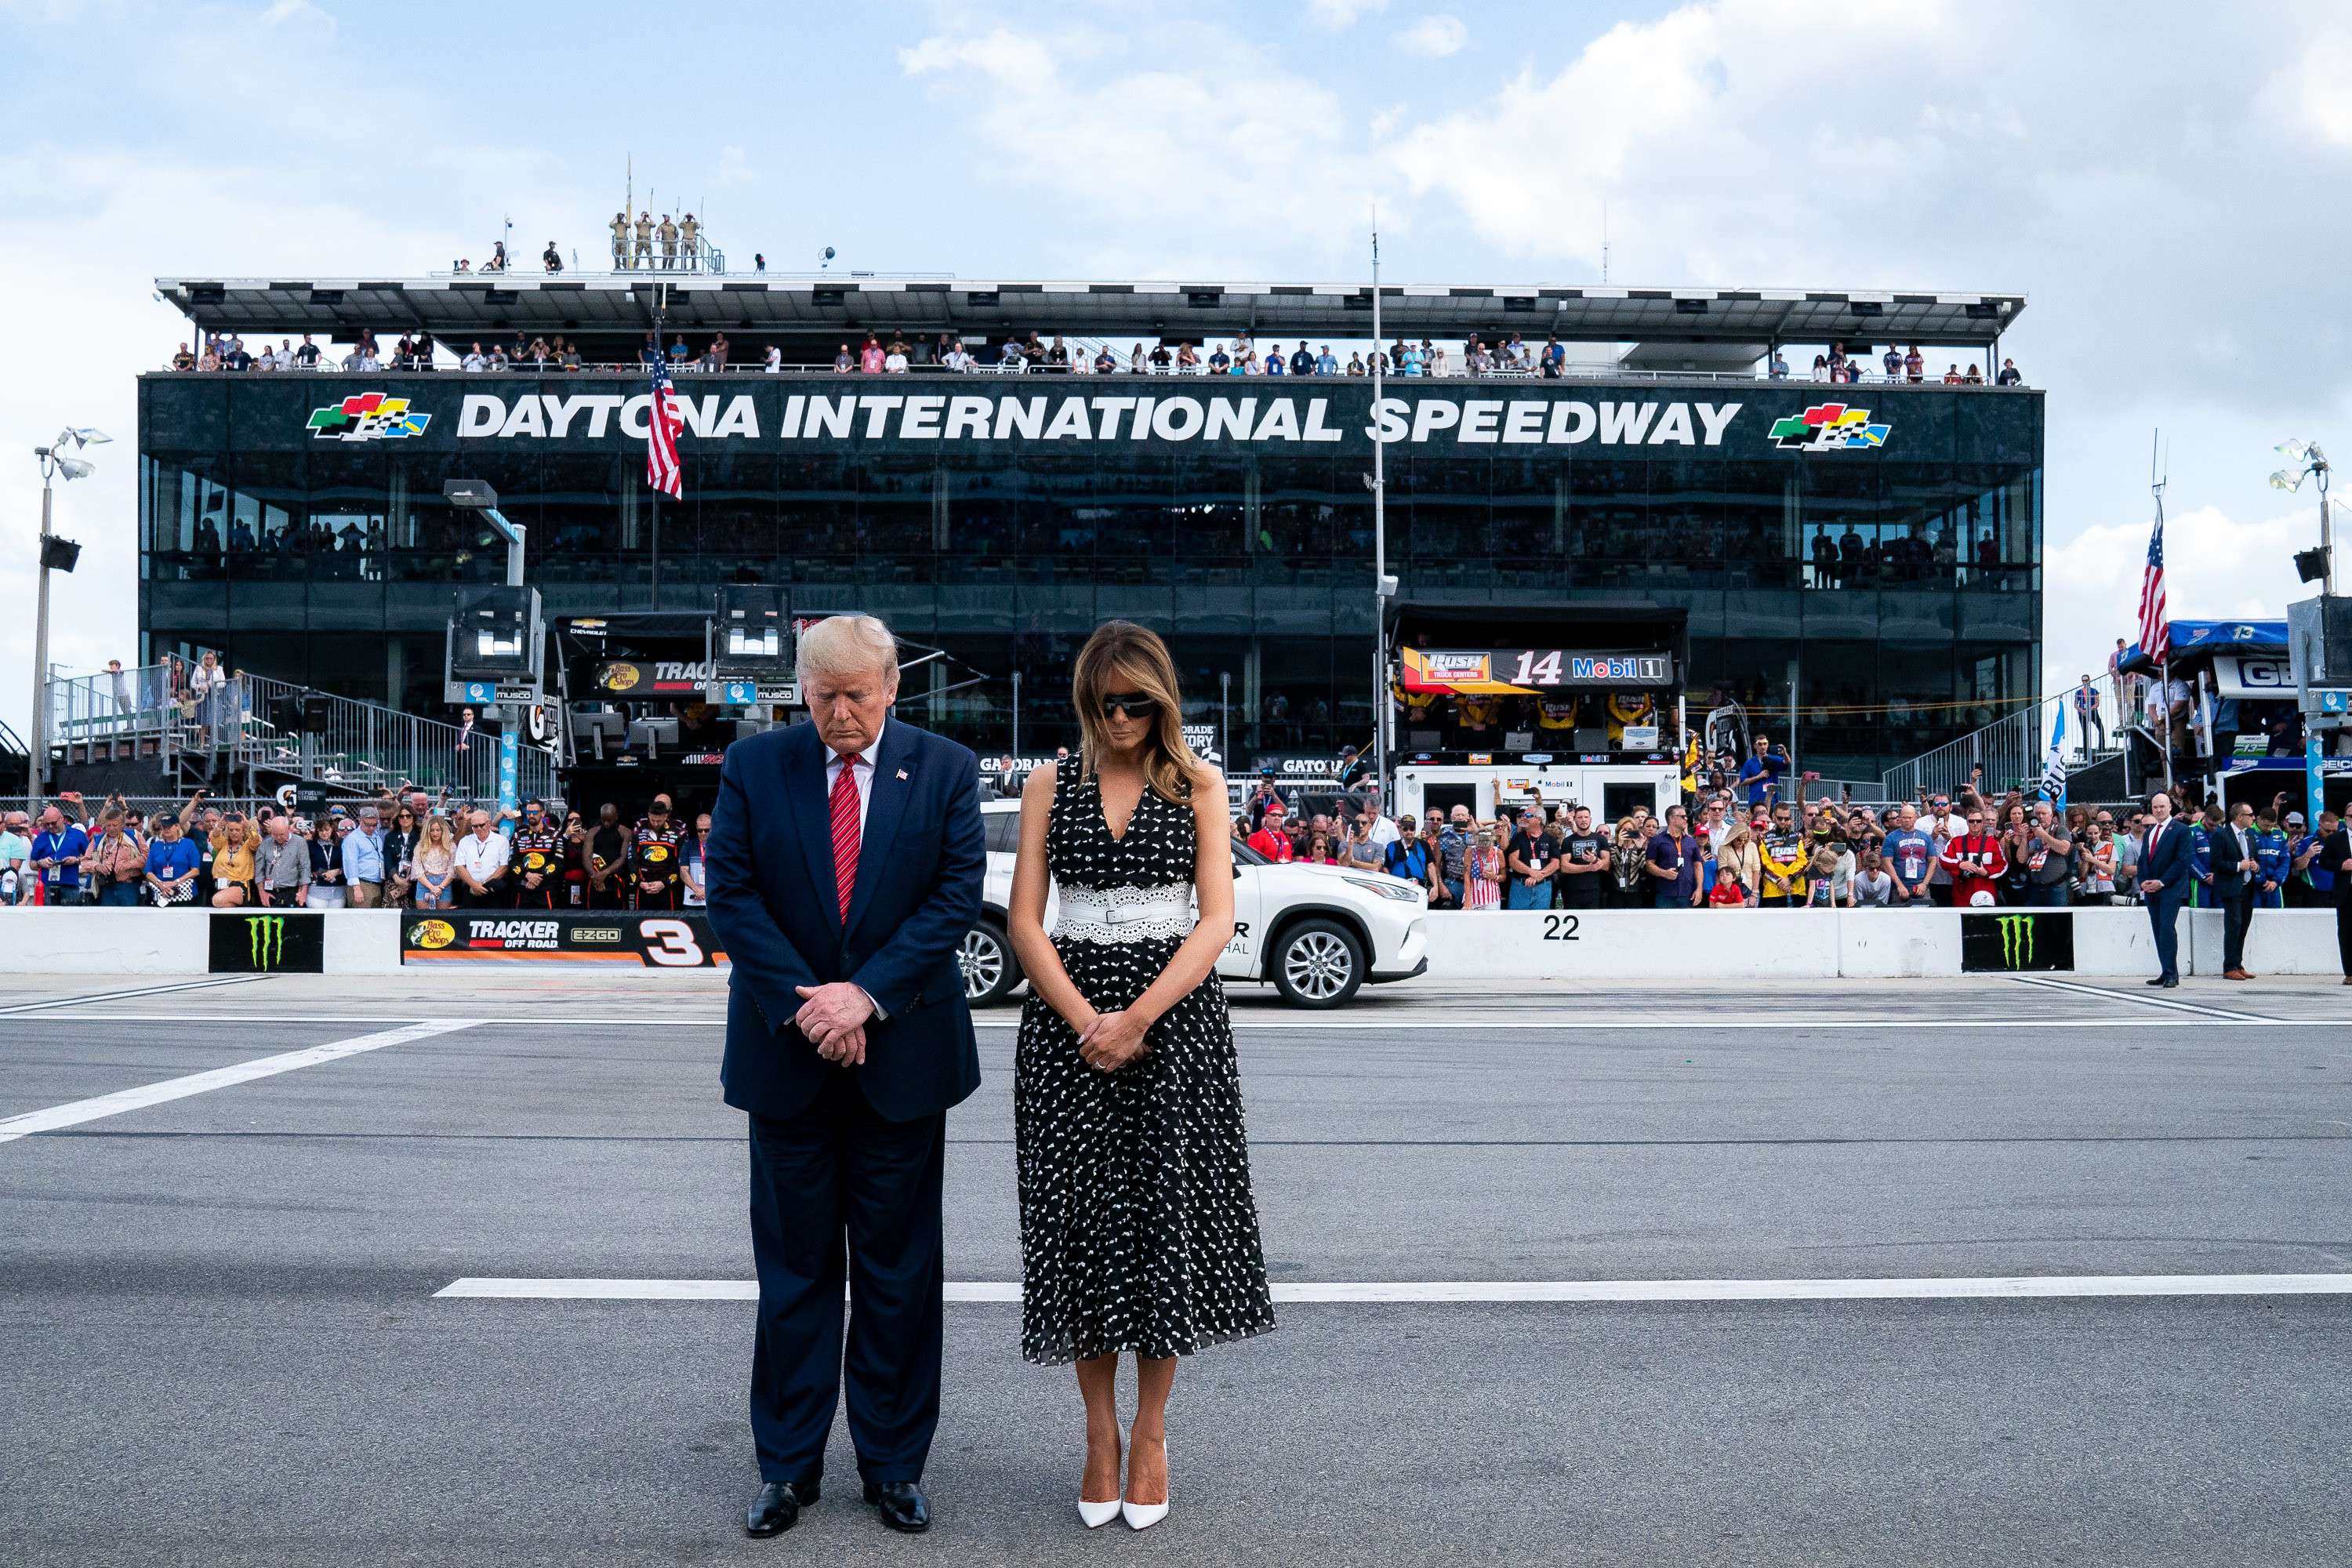 President Trump and the First Lady at the NASCAR Daytona 500 Race